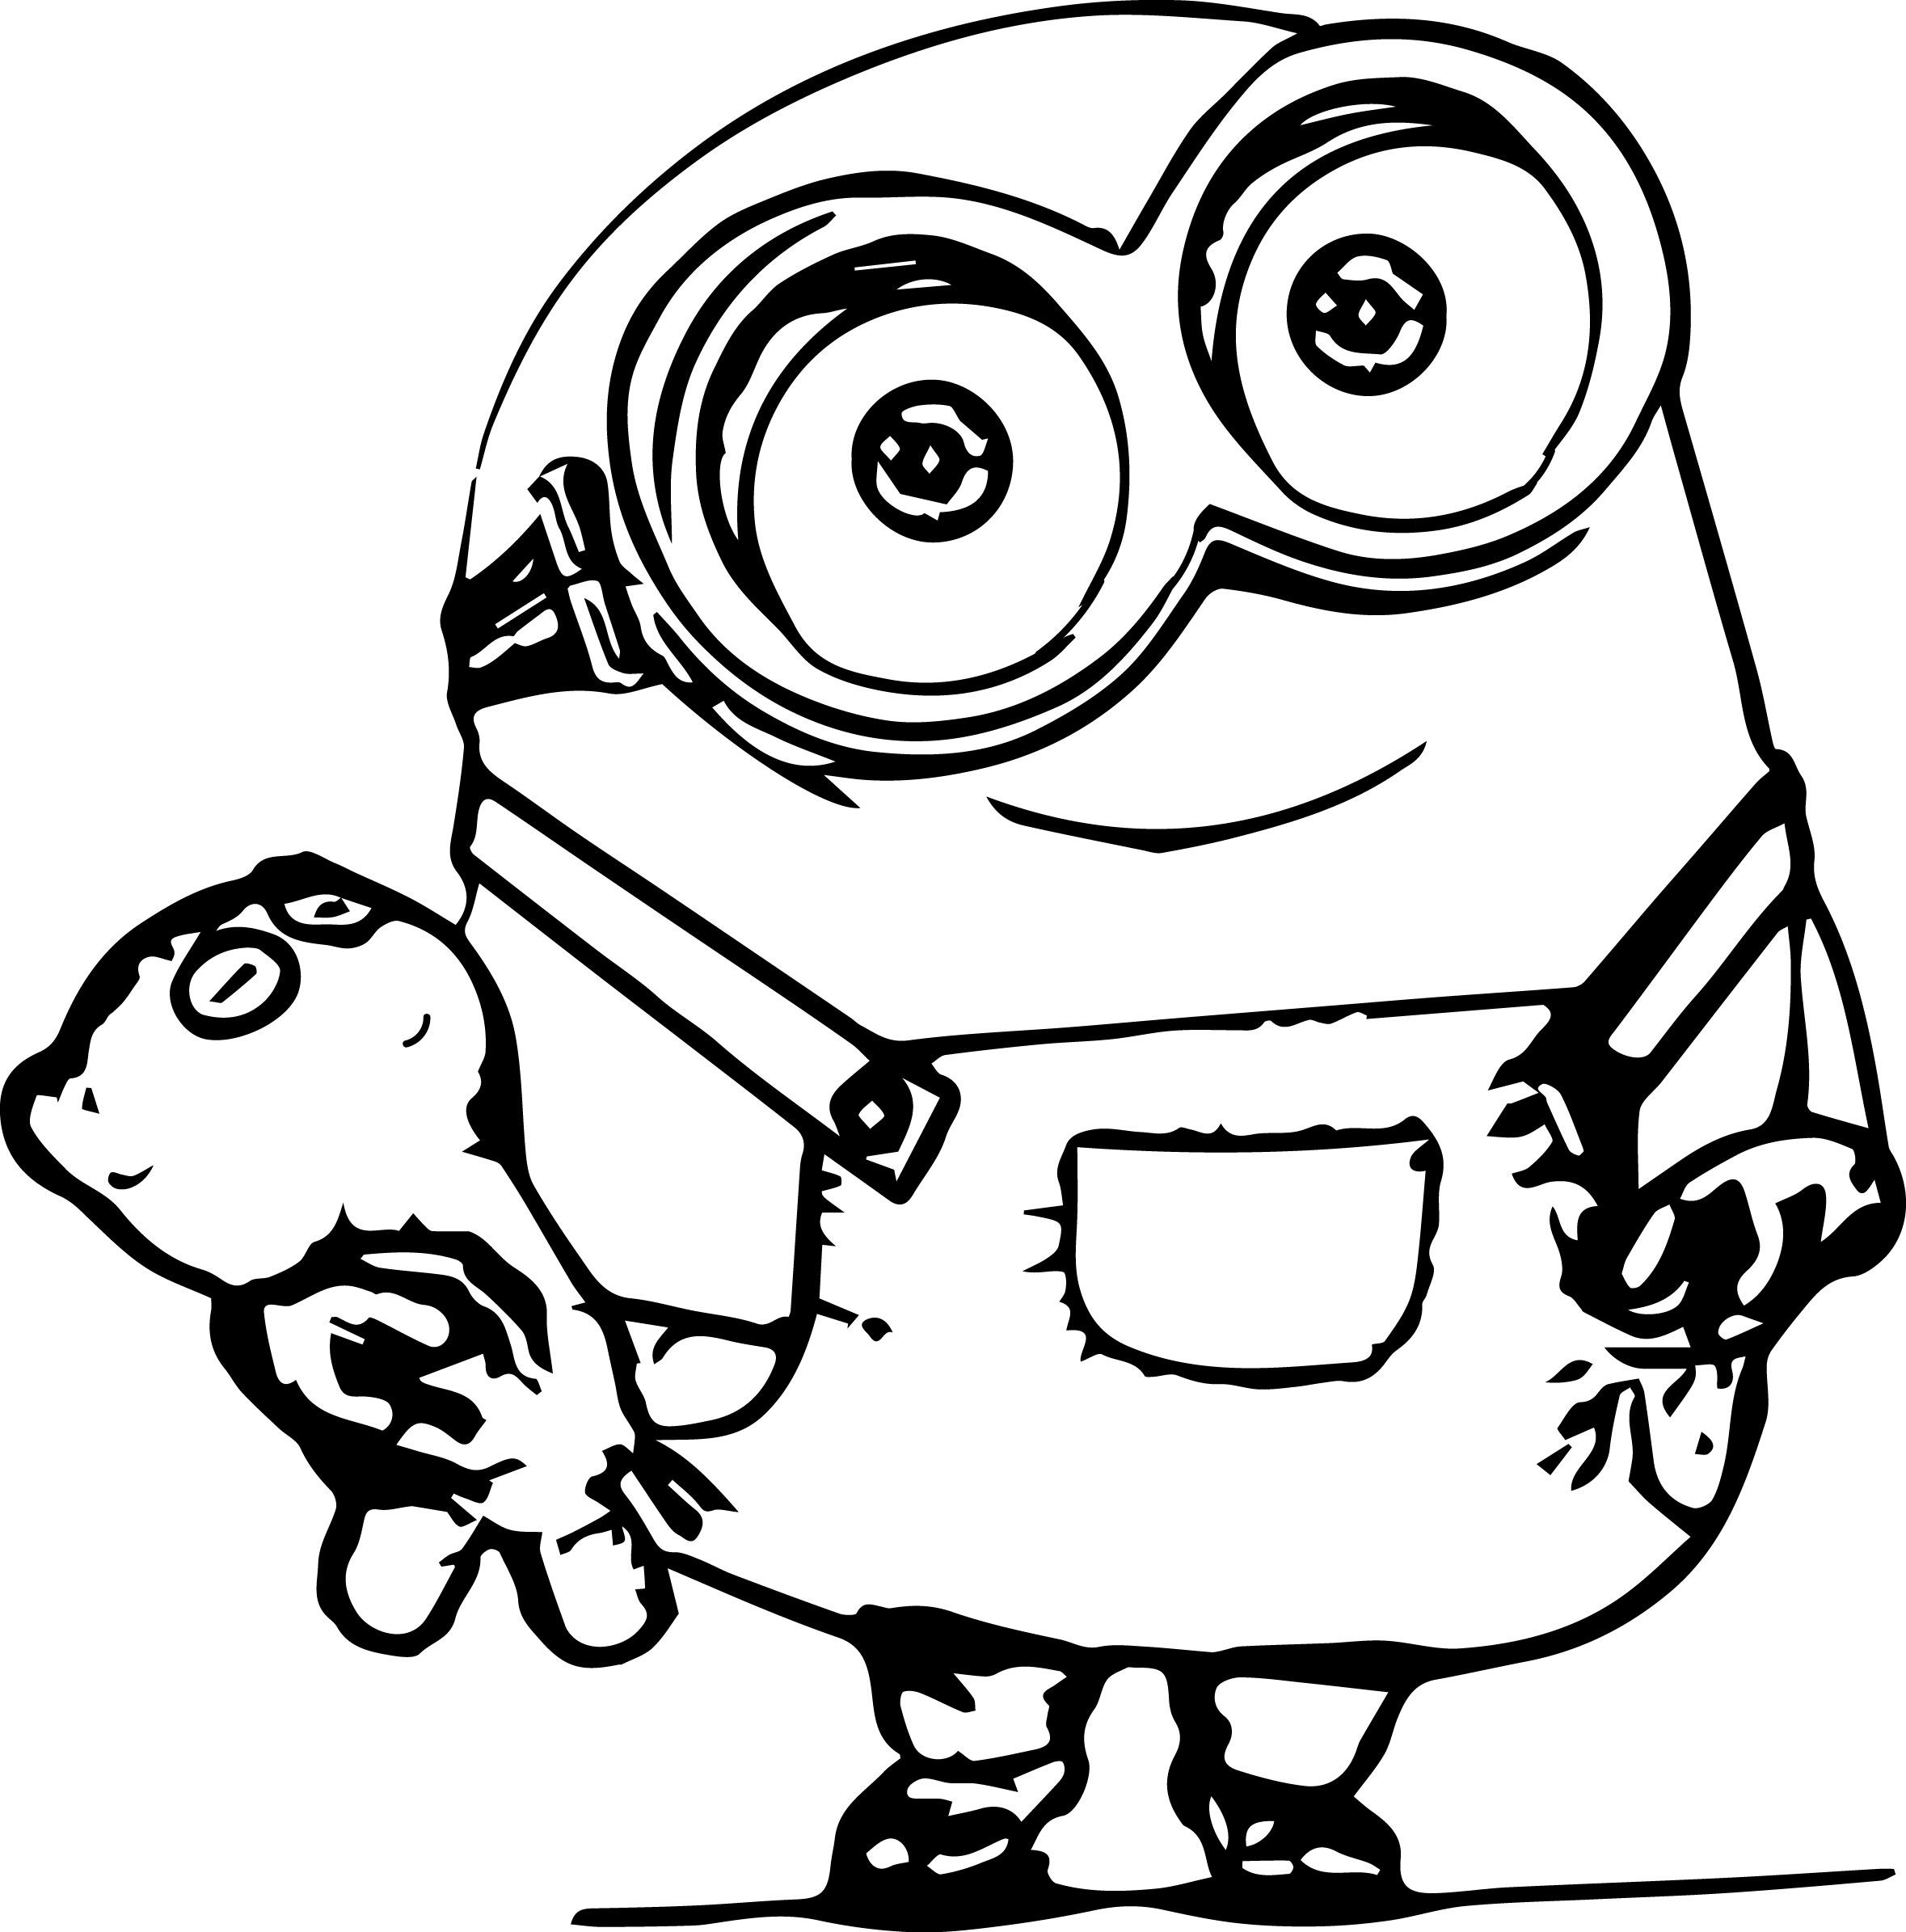 Bob The Minions Coloring Pages Minion Coloring Pages Minions Coloring Pages Cartoon Coloring Pages